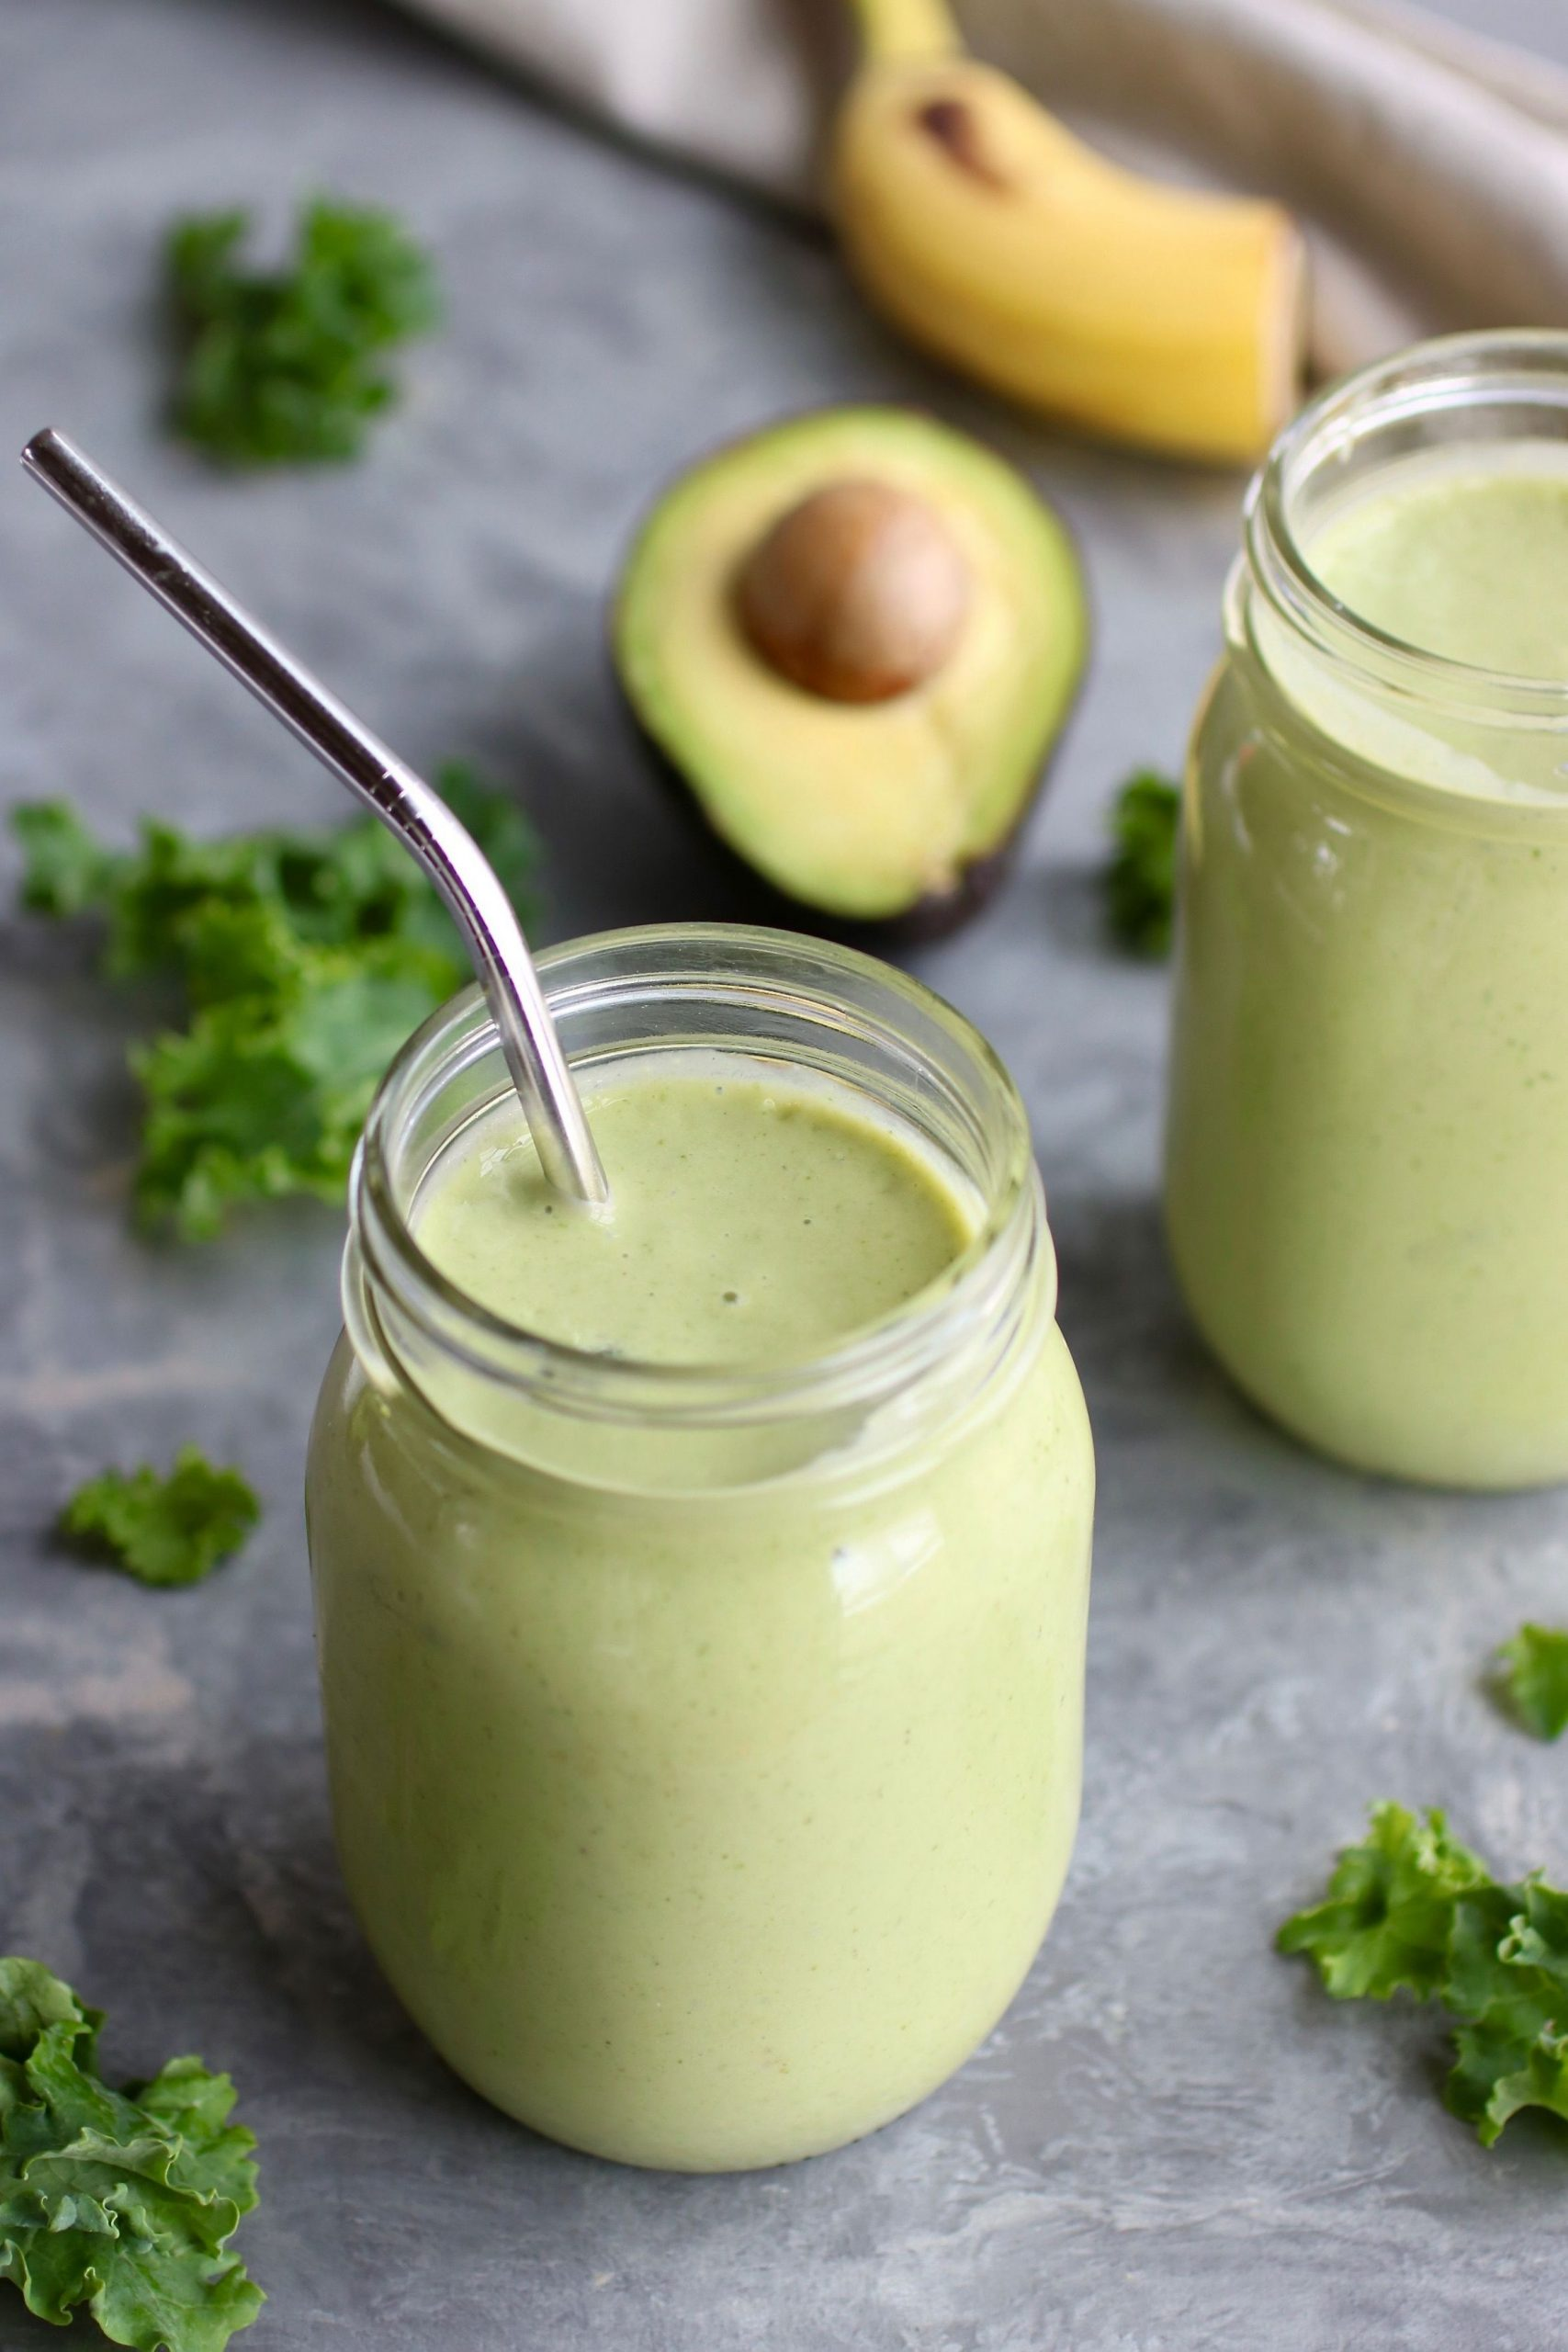 12 Weight Loss Smoothie Recipes - Healthy Smoothies to Lose Weight